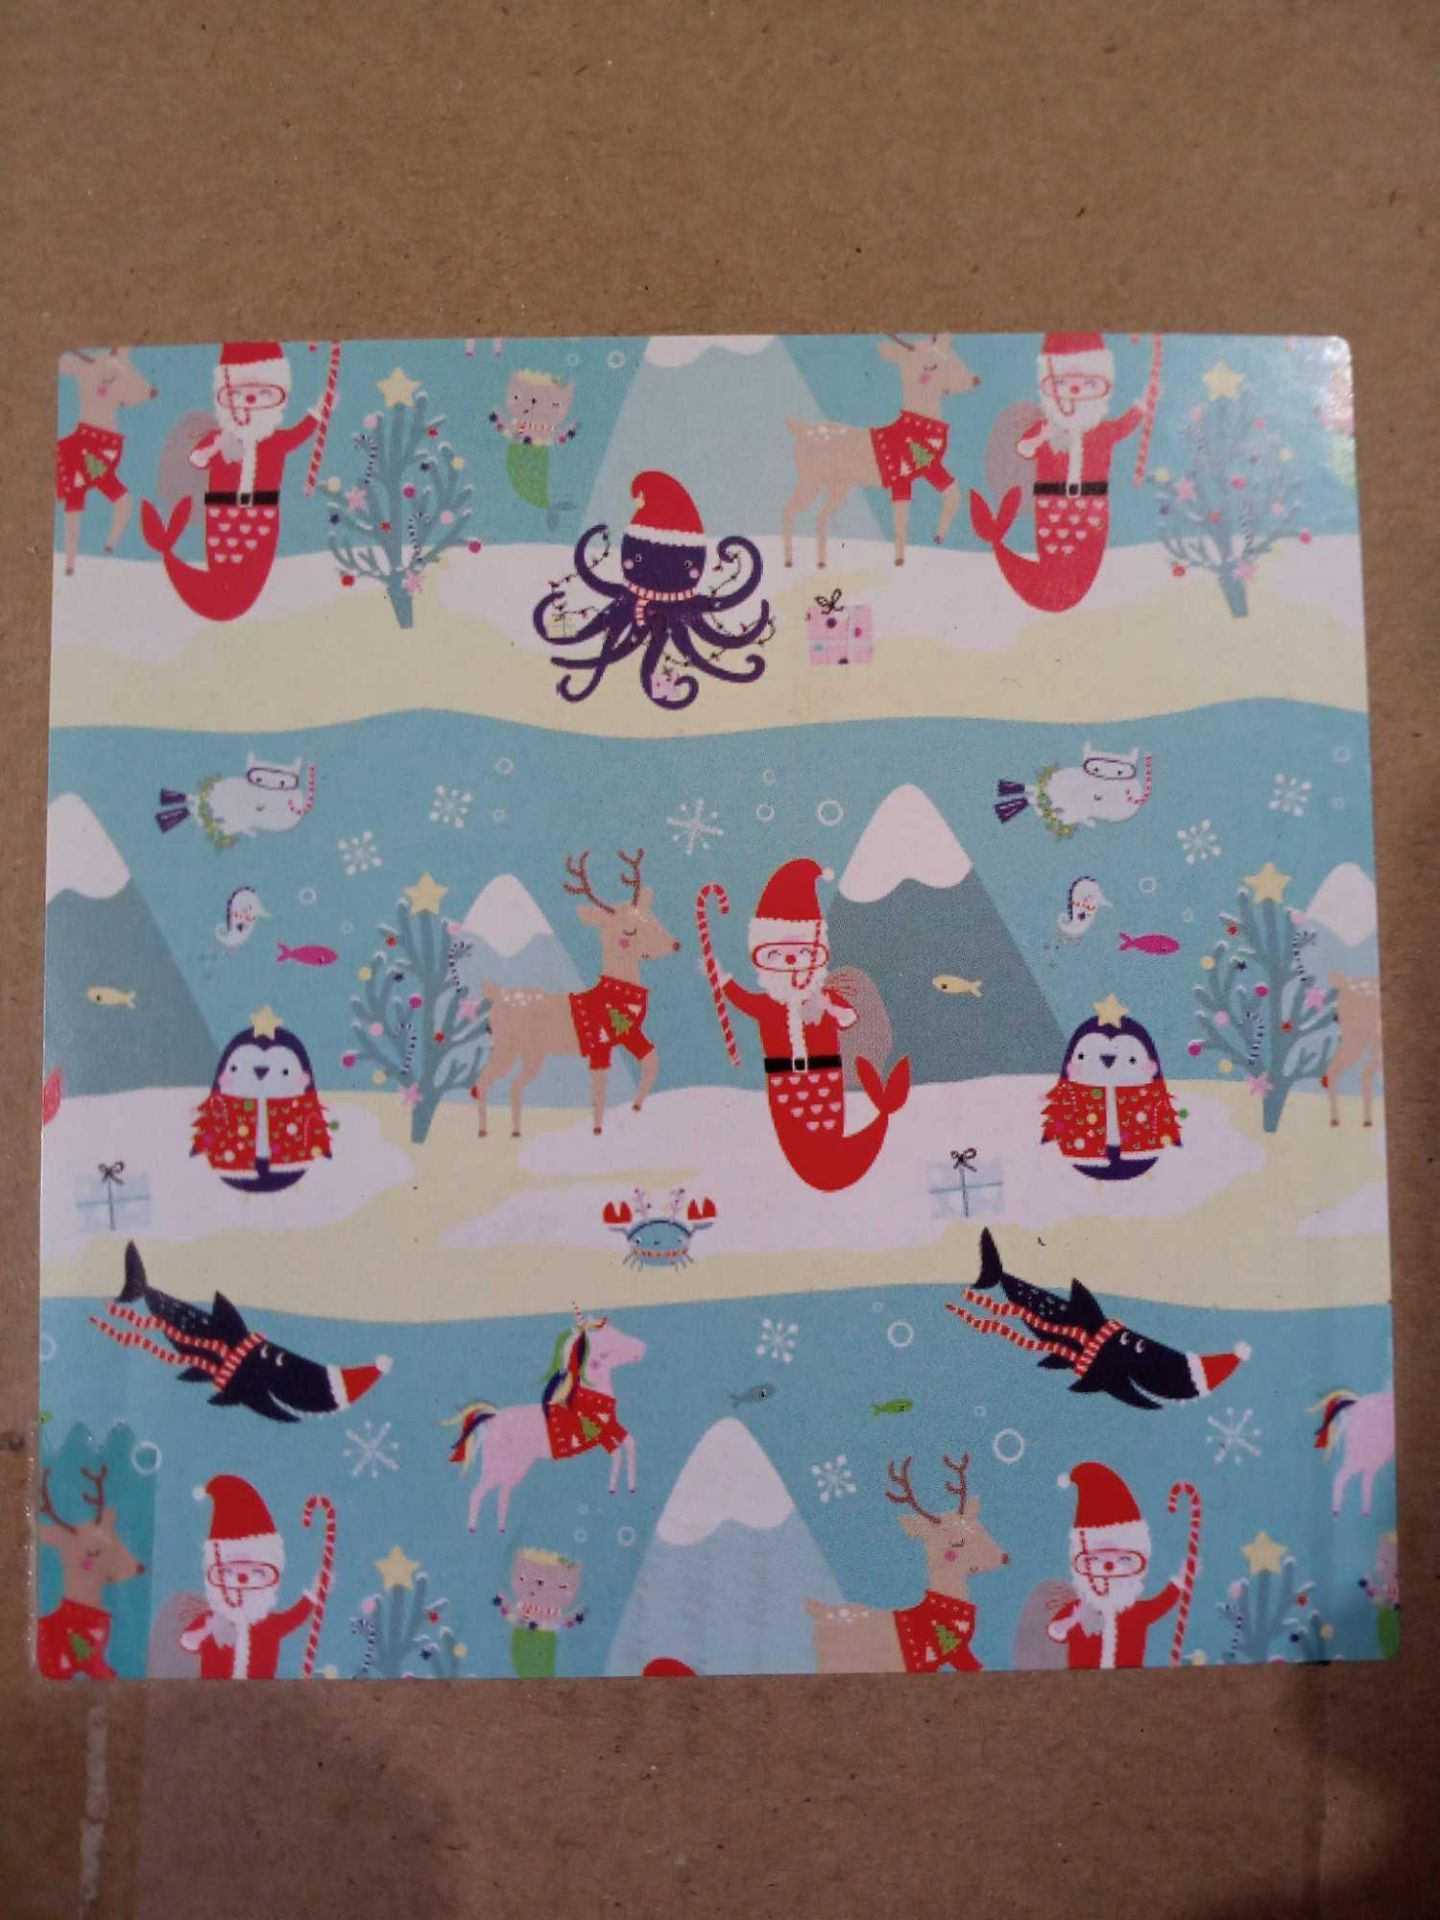 RRP £25 Box To Contain 25 Rolls Of 12M Kids Character Design Roll Wrap